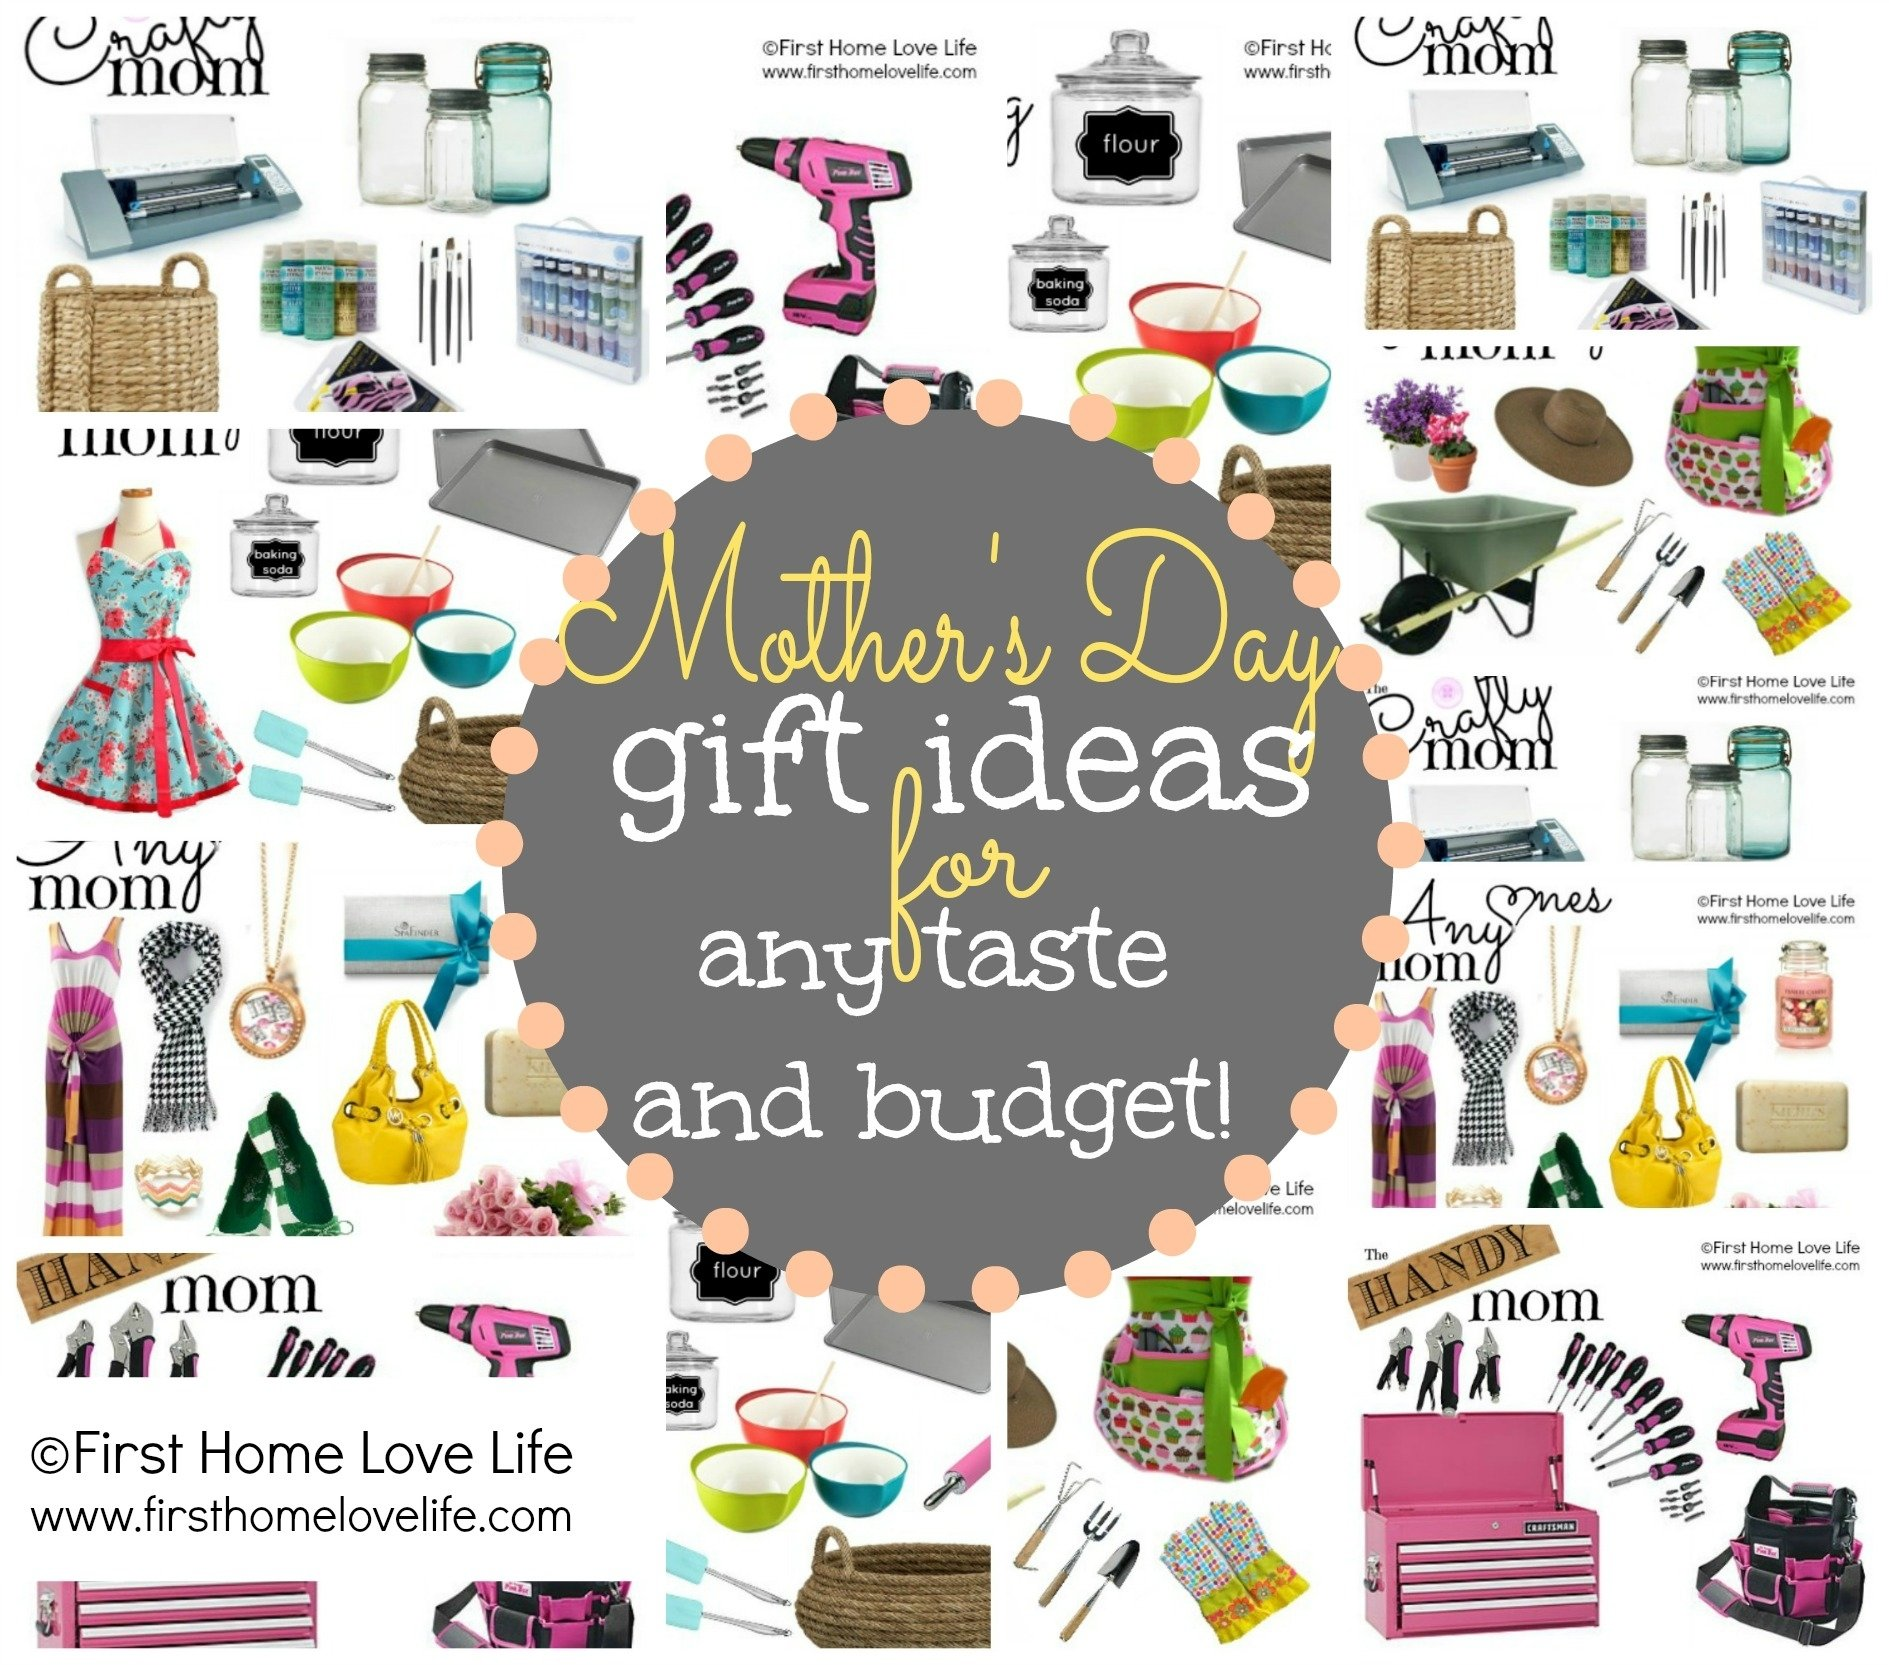 10 Elegant Christmas Gifts Ideas For Mom mothers day gift ideas first home love life 2020